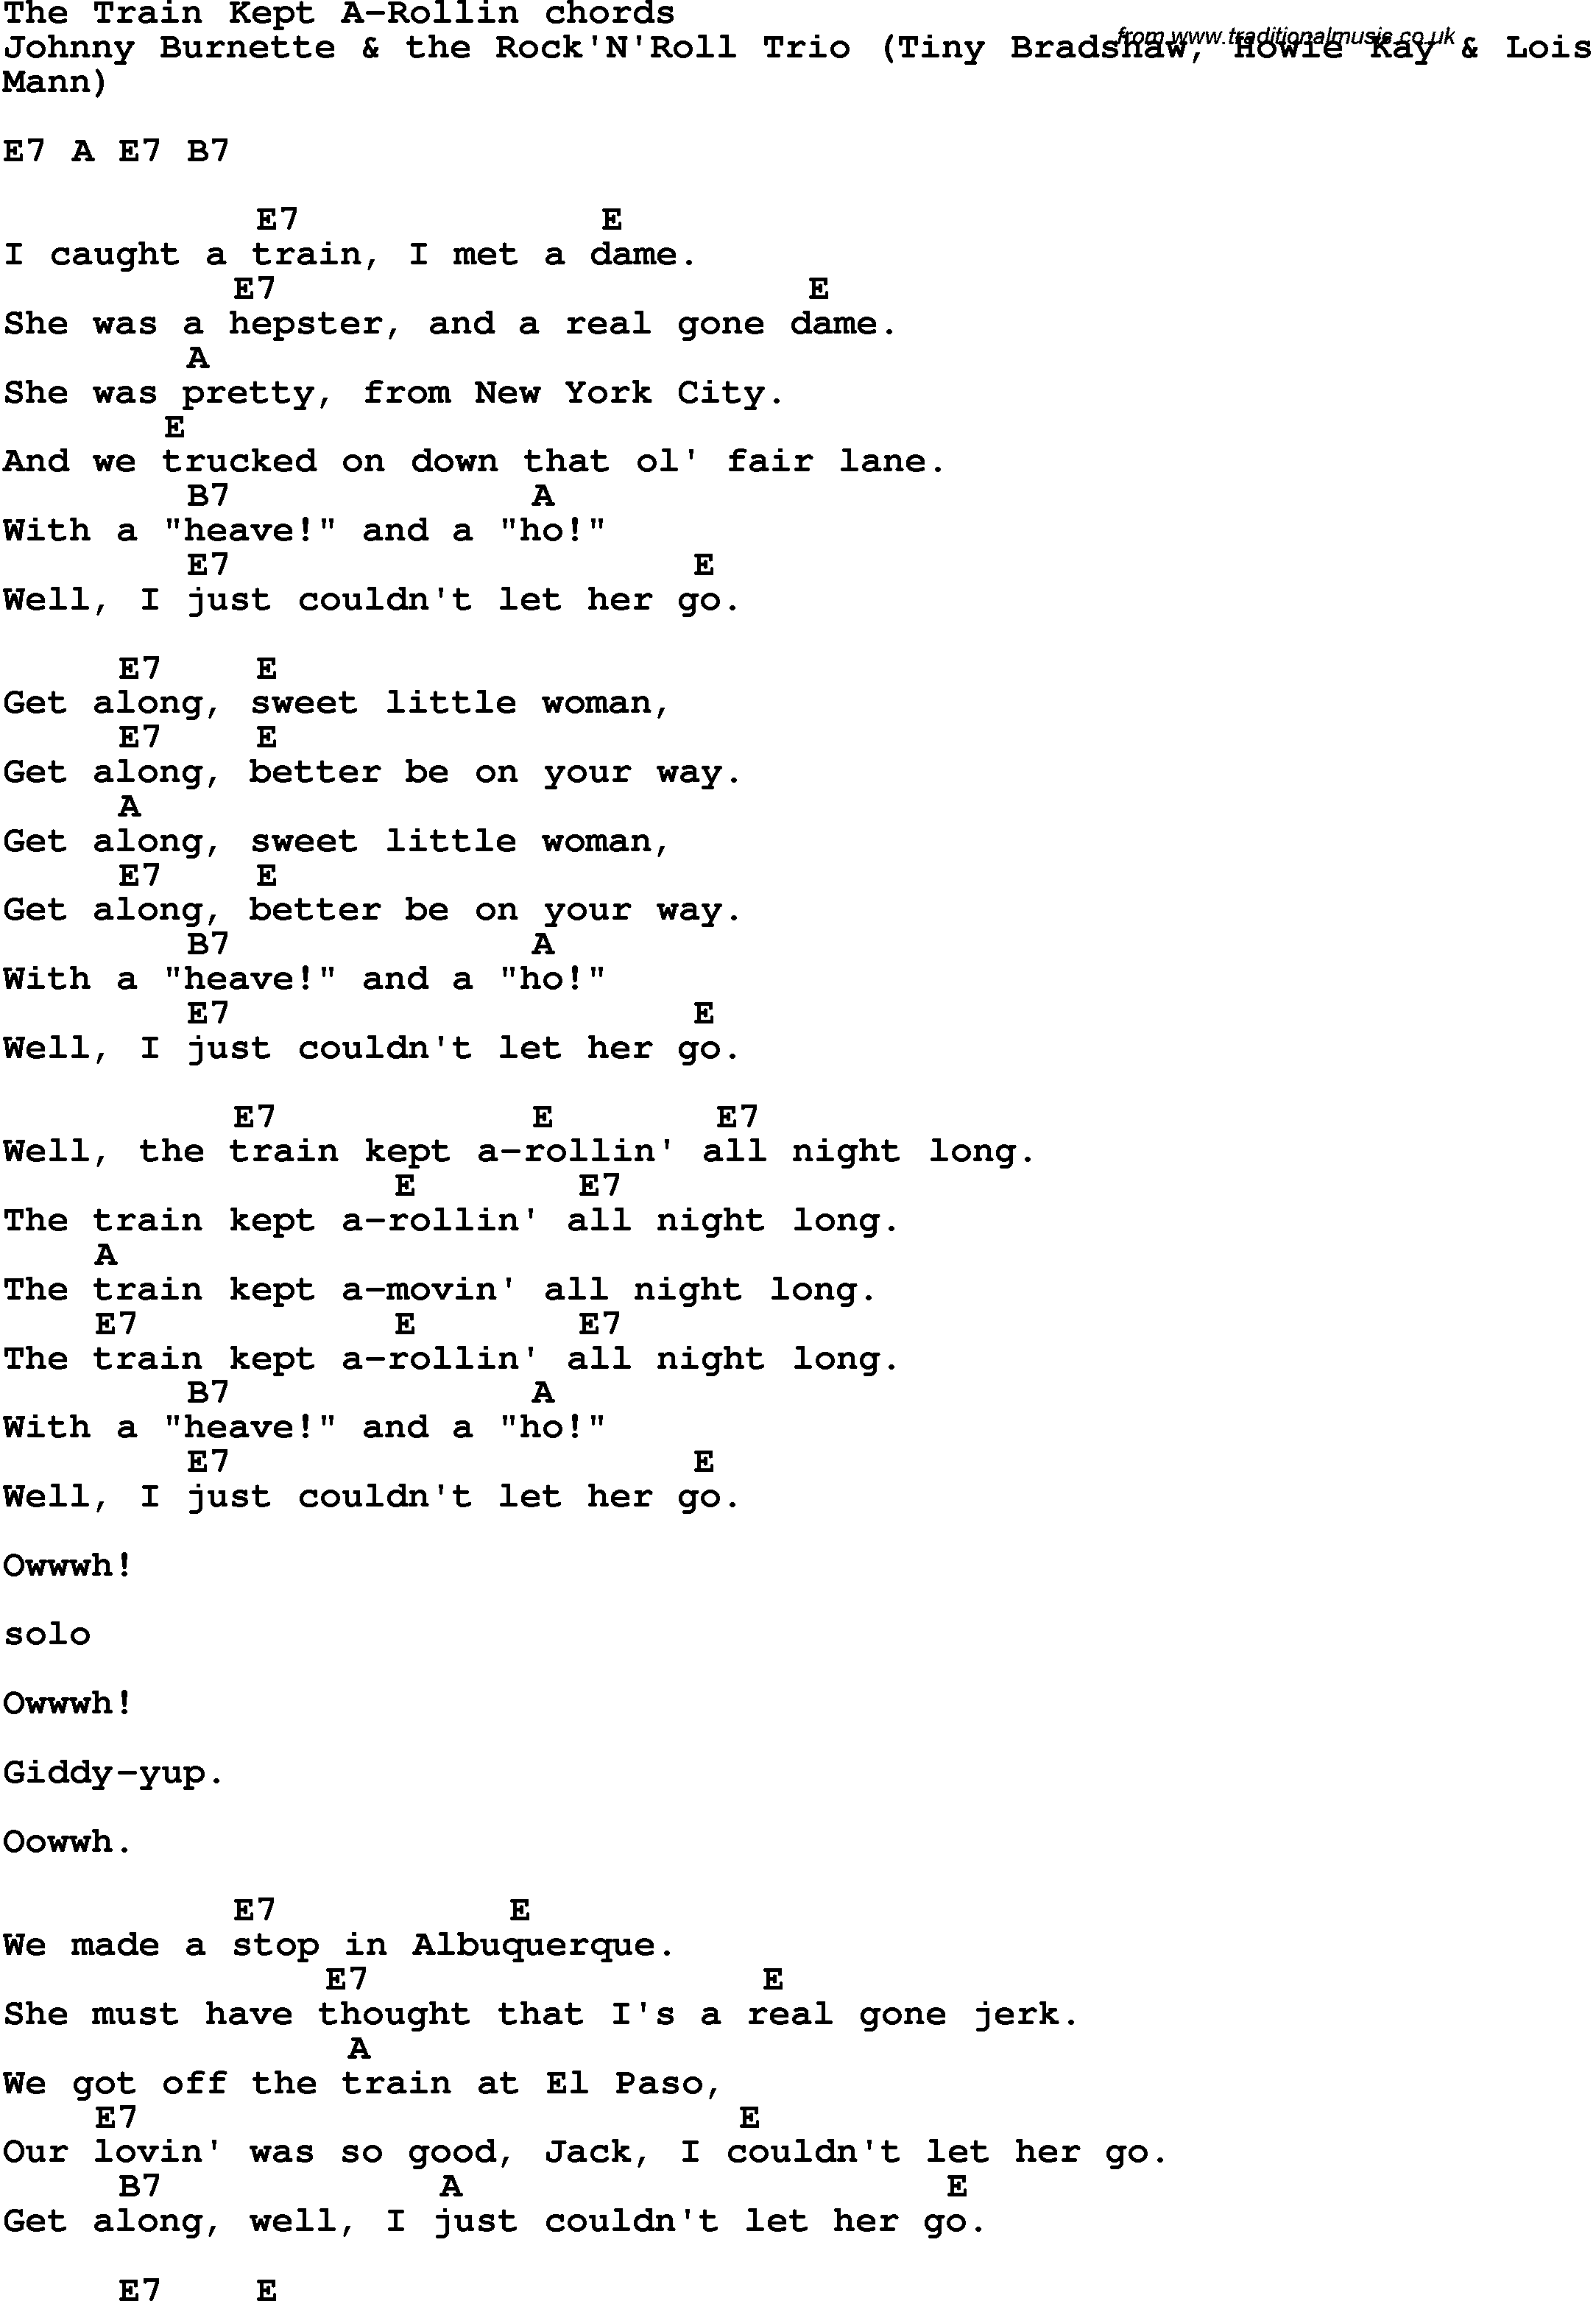 Song Lyrics With Guitar Chords For The Train Kept A Rollin Johnny